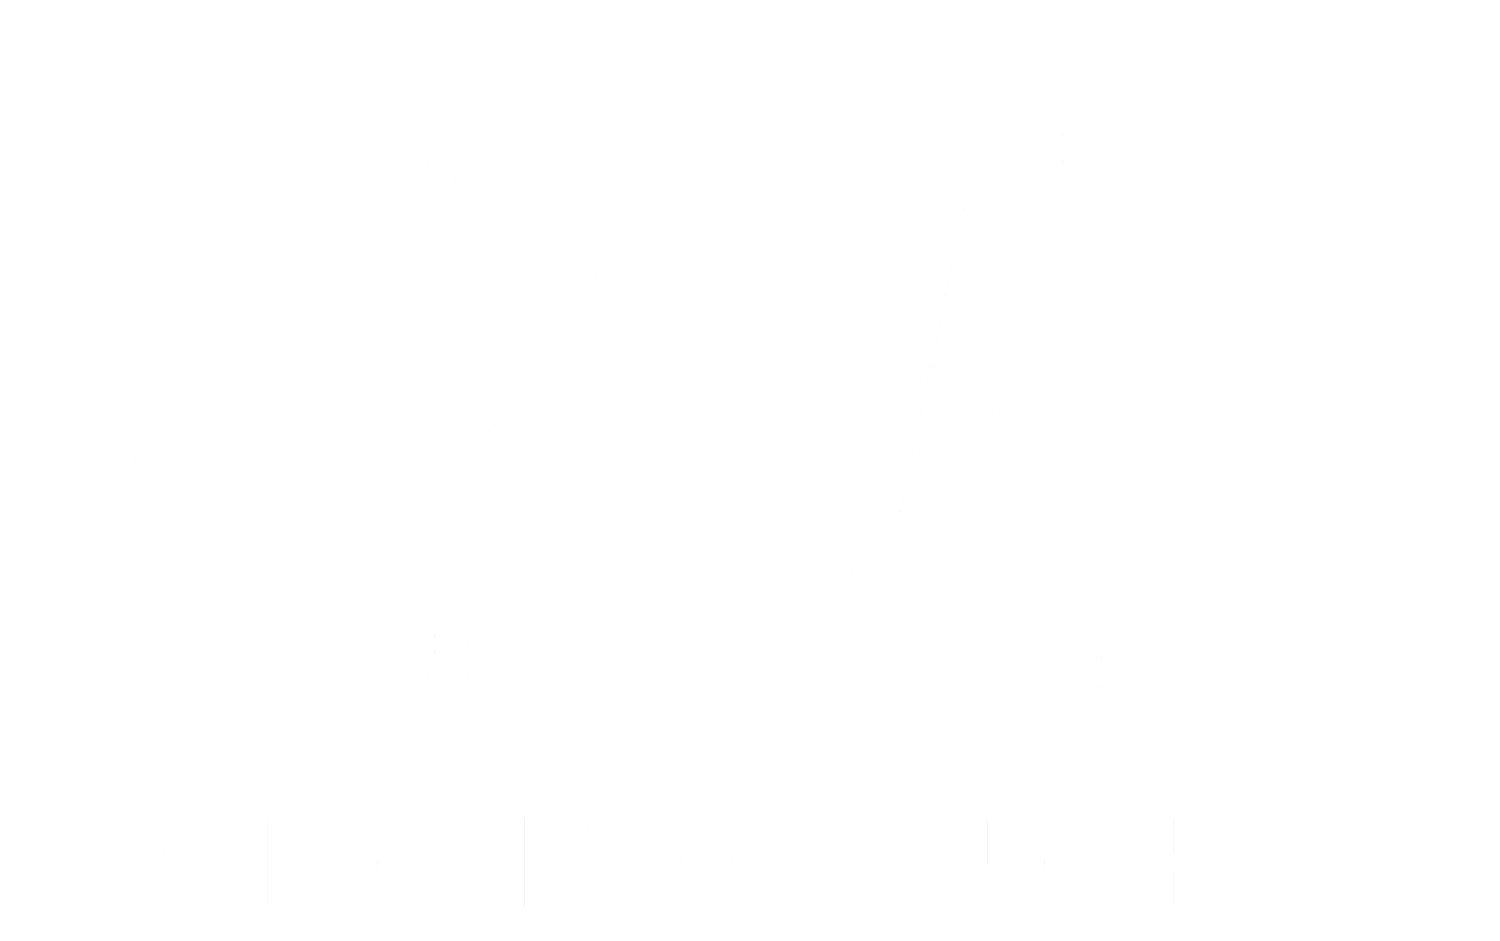 Common Woman Chorus